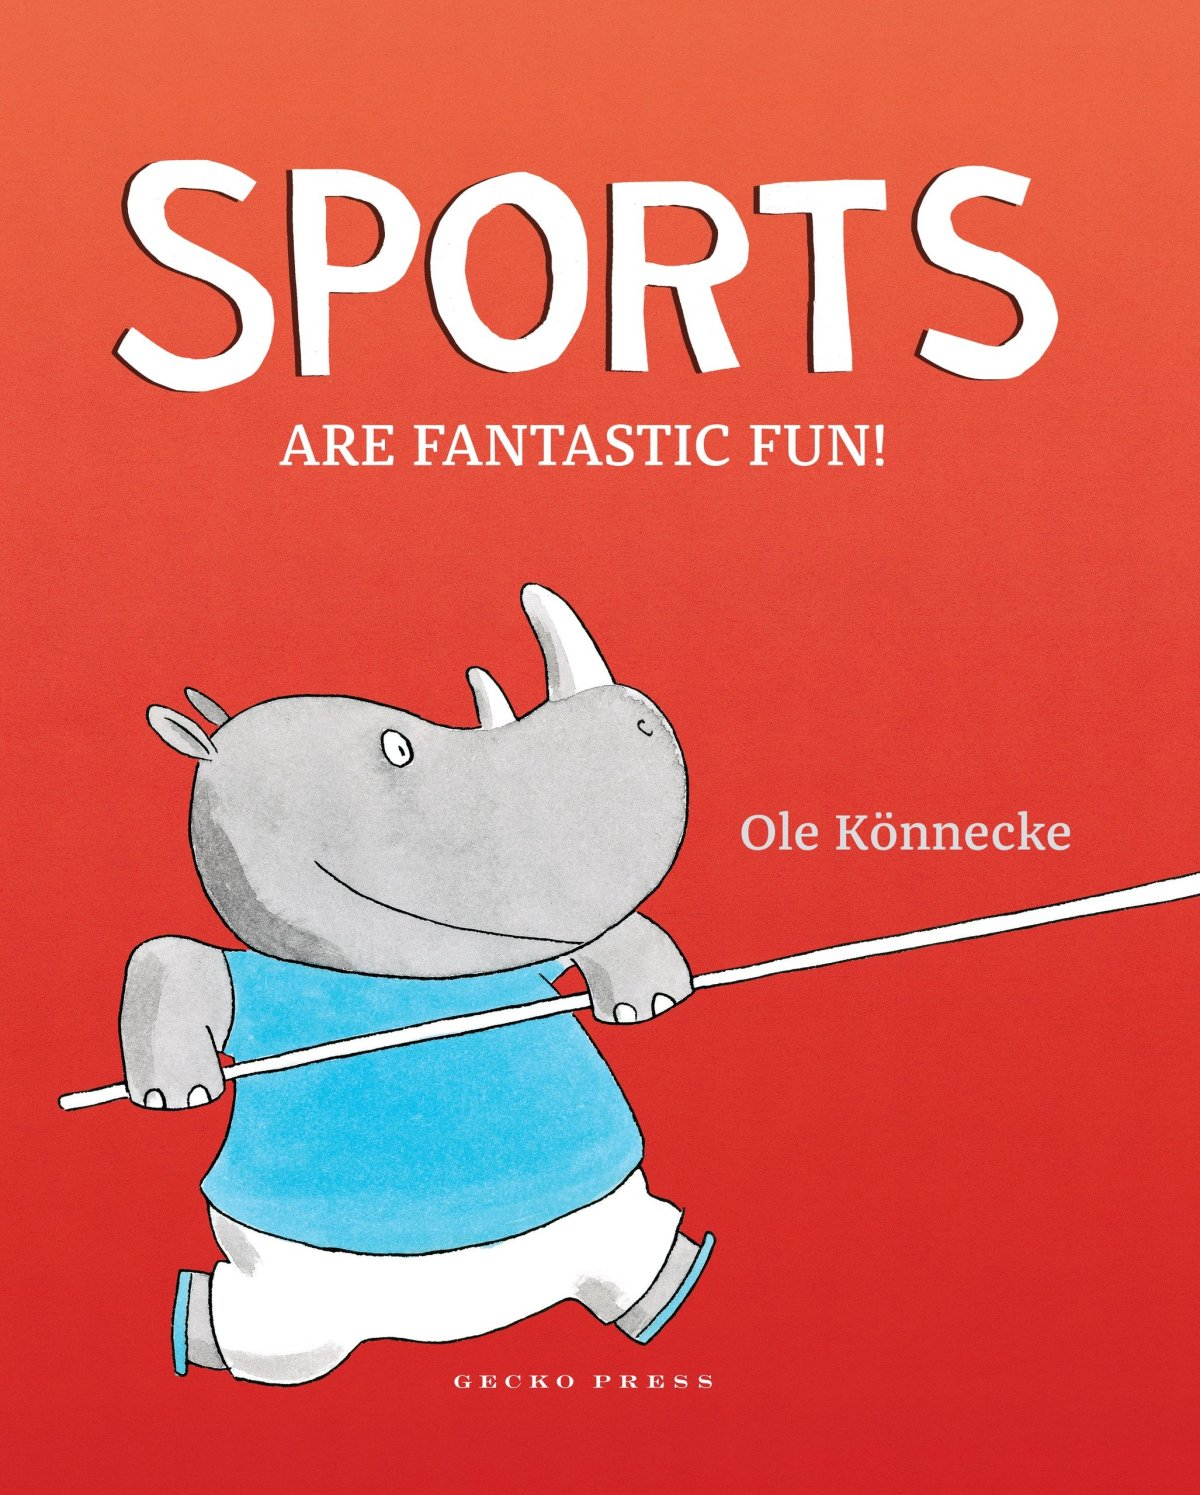 sports are fantastic fun cover image